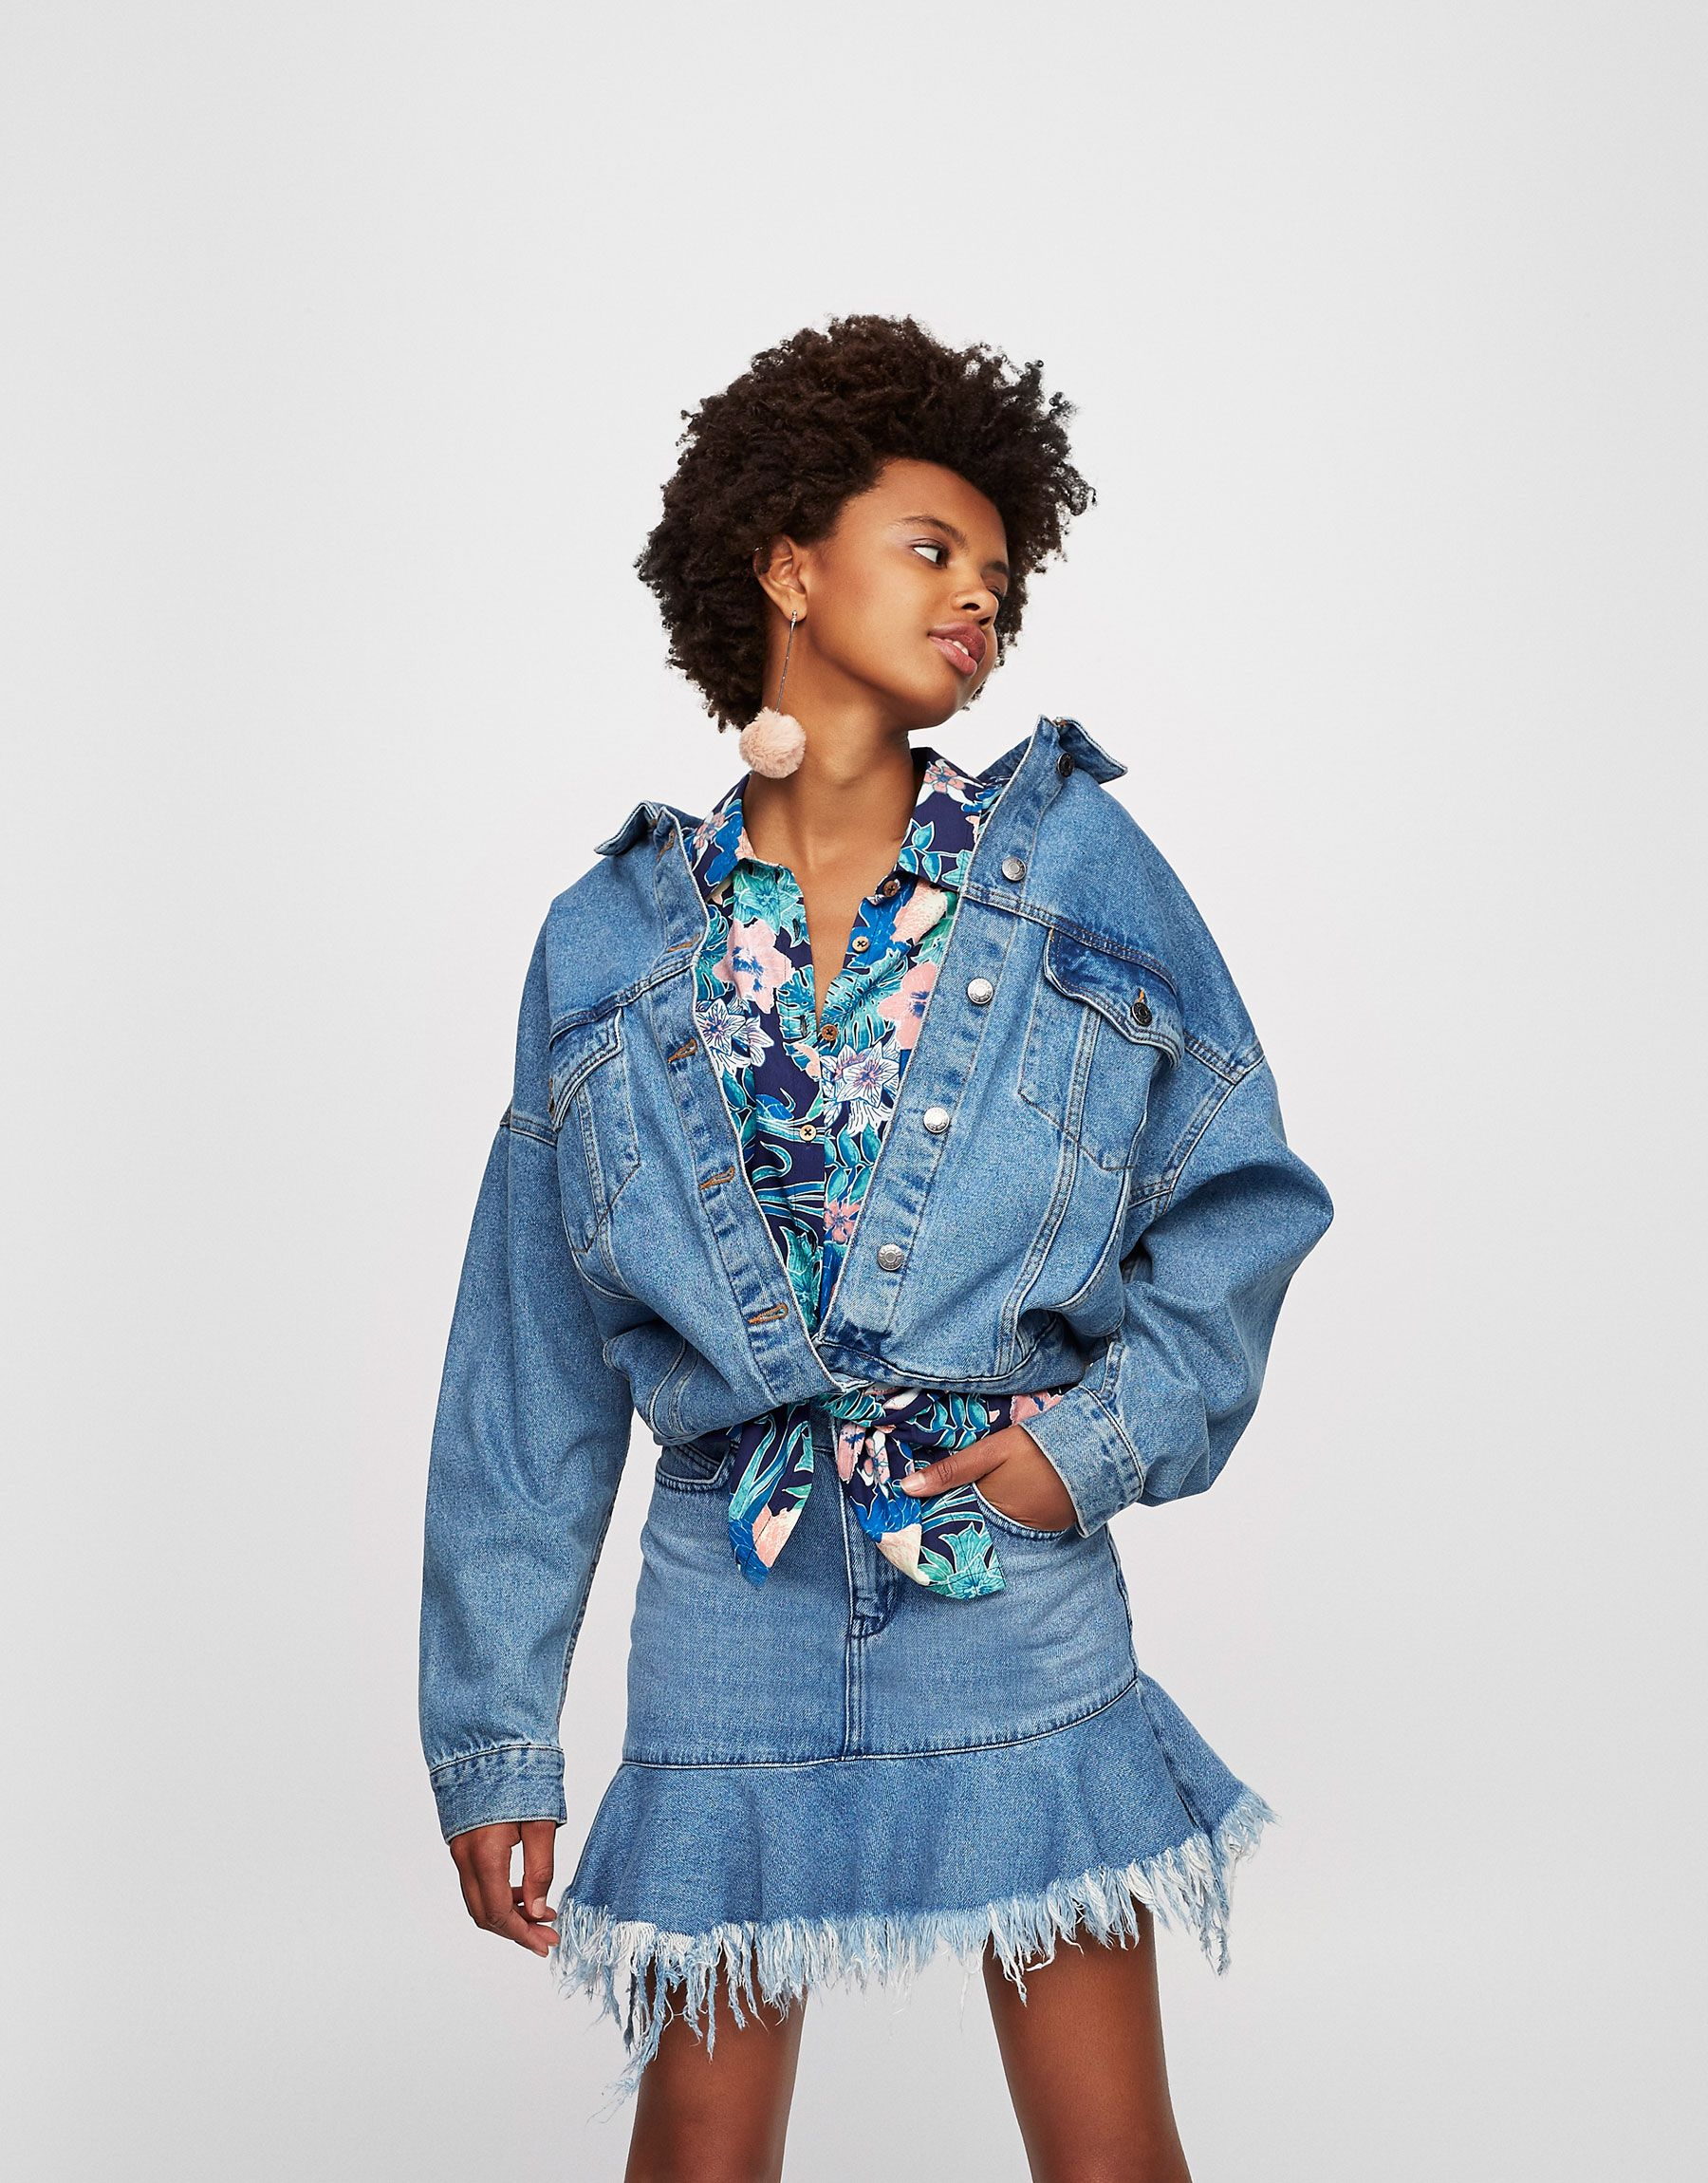 5cb9a9dcfafc Oversized denim jacket with drop shoulders - Denim jackets - Clothing -  Woman - PULL BEAR Hungary